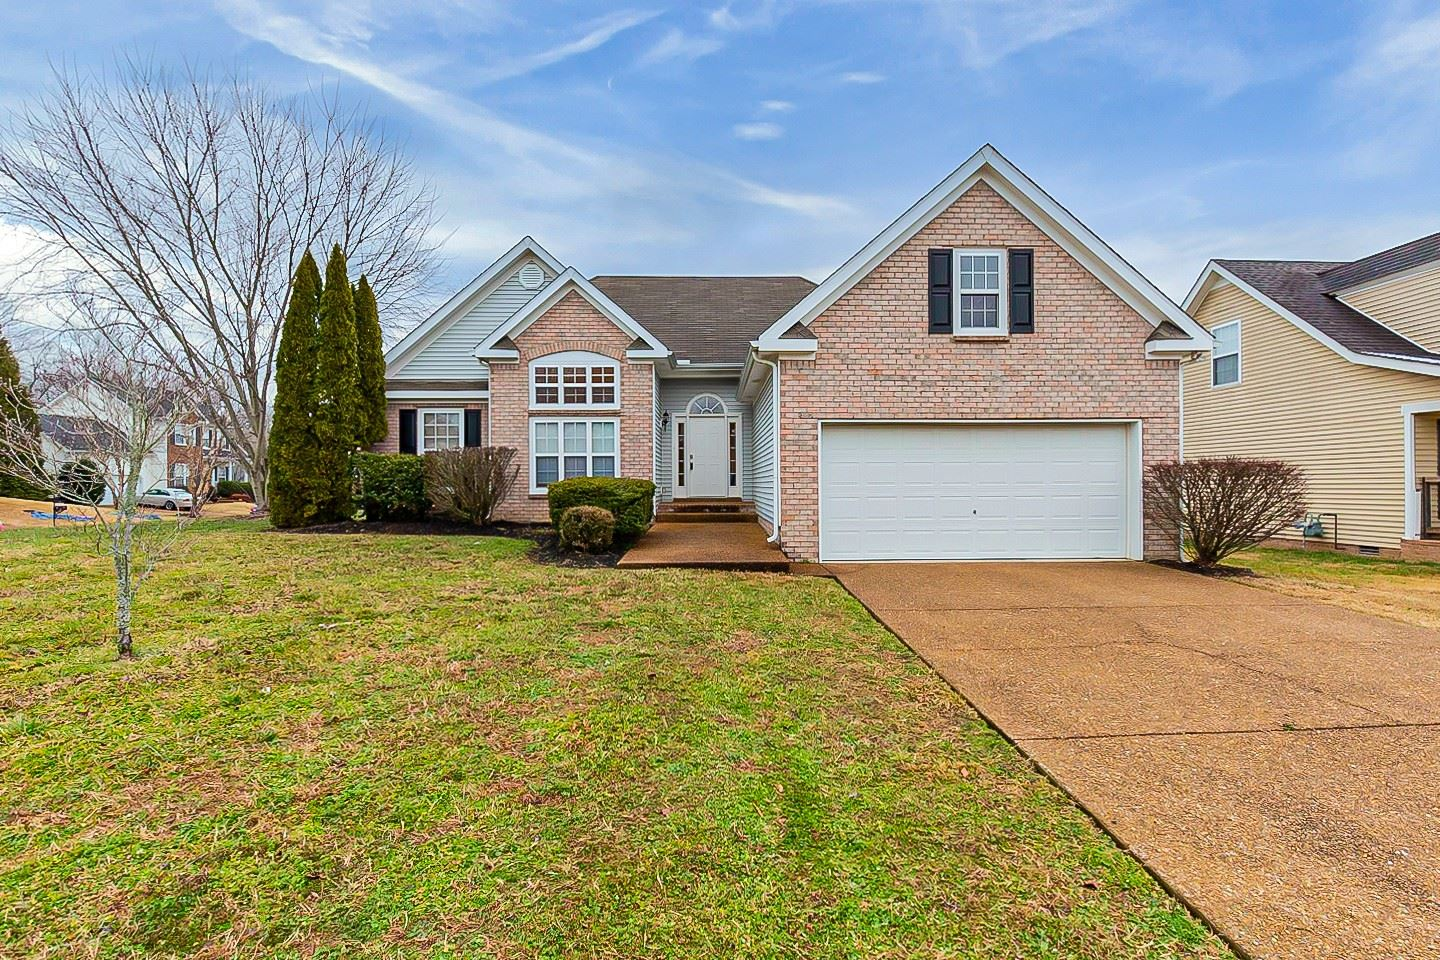 Photo of 1025 Persimmon Dr, Spring Hill, TN 37174 (MLS # 2219955)